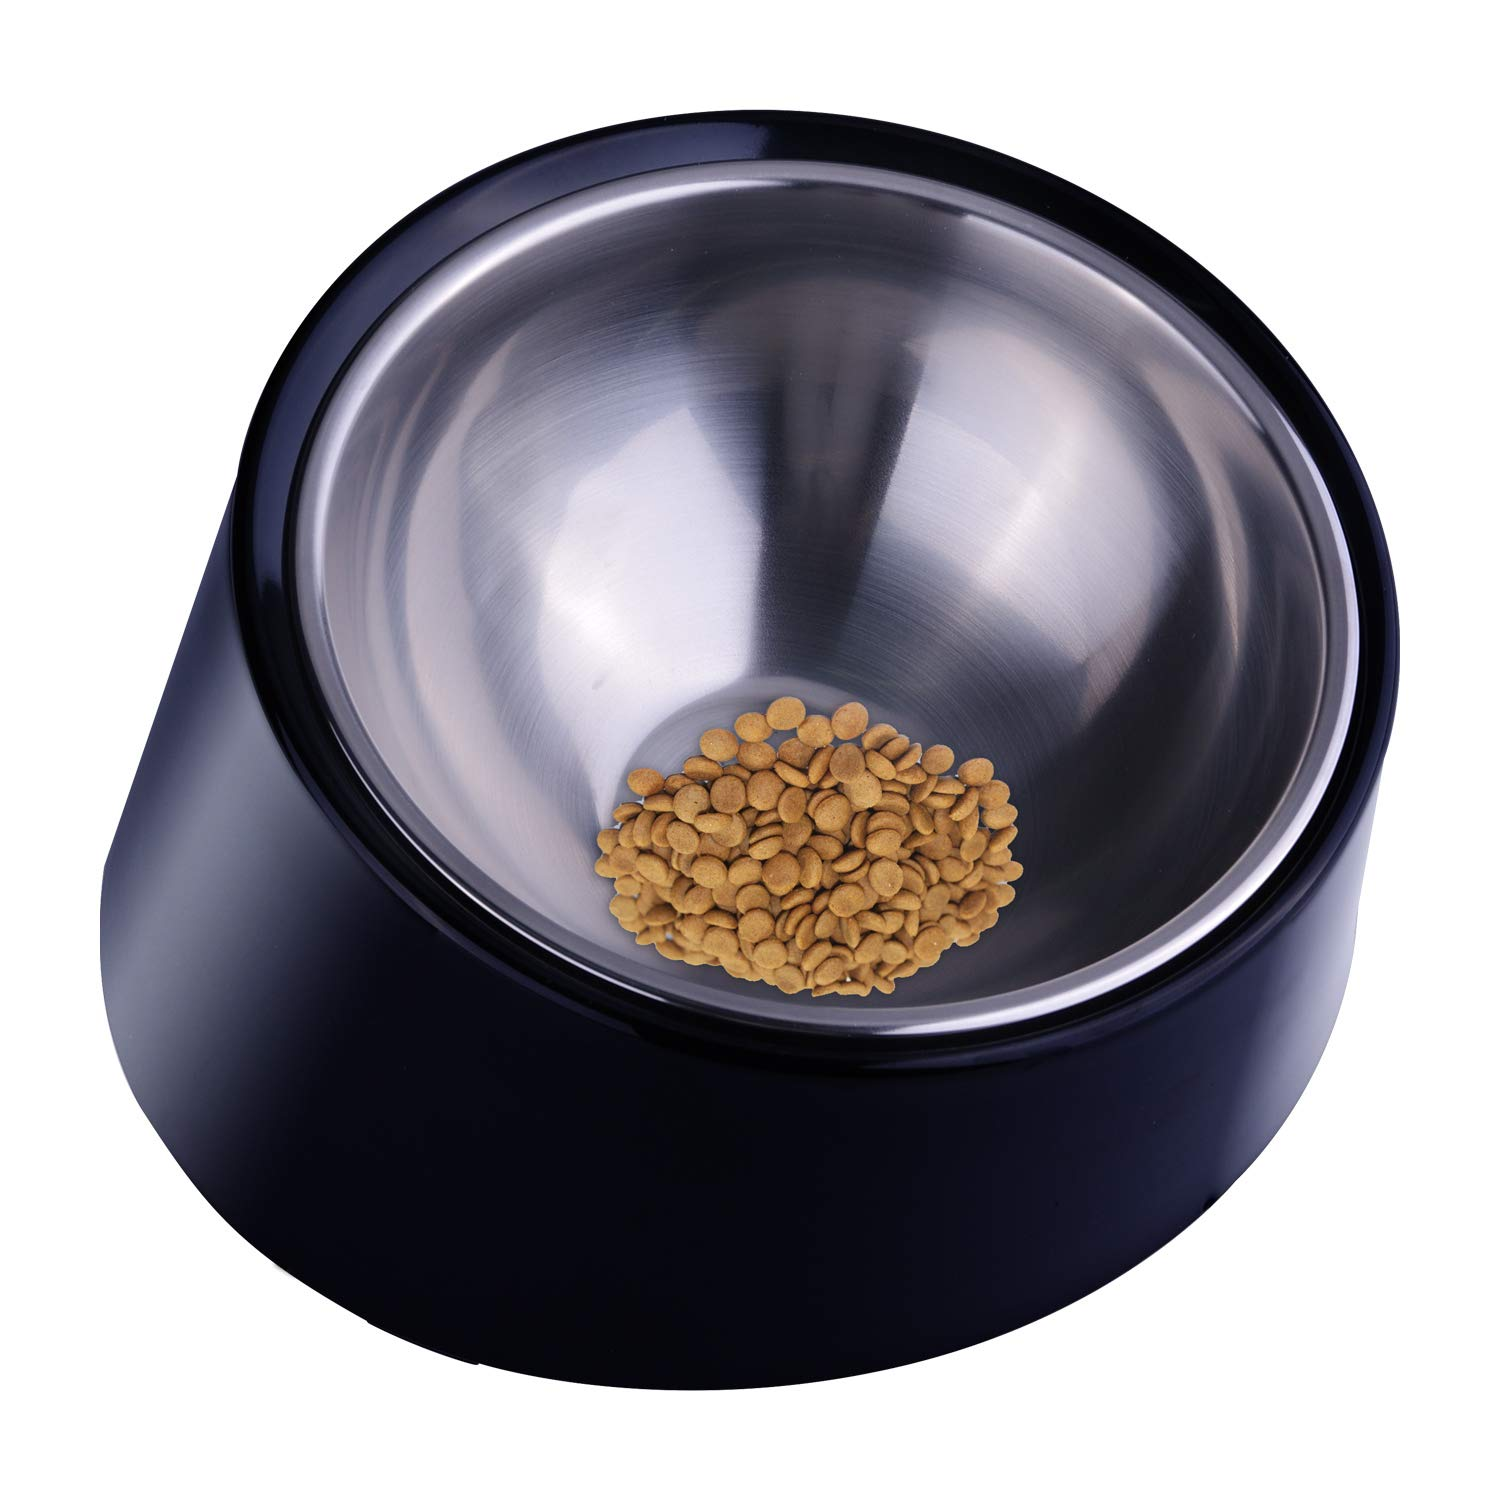 Super Design Mess Free 15 Degree Slanted Bowl for Dogs and Cats Black Large